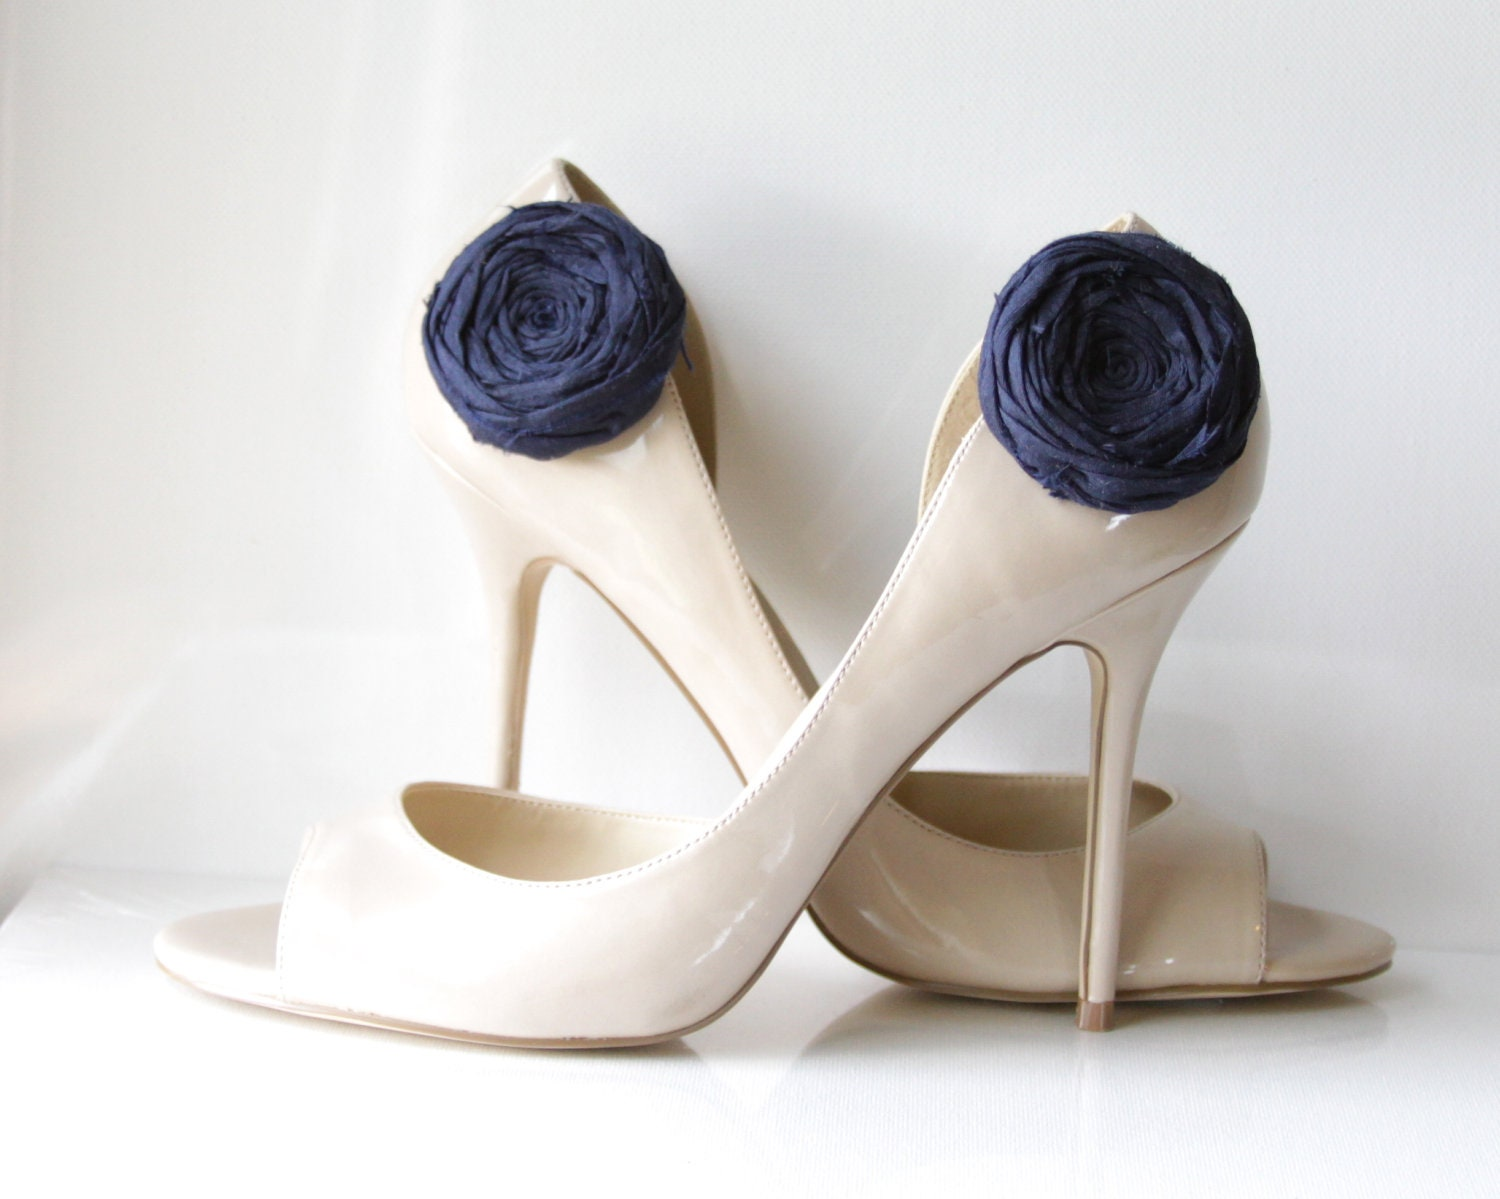 Rosette Shoe Clips Navy Blue or your choice Silk Flower Shoe Clips with Bluette Clips Bridal Party Gift Shoe Blooms 2 inches - Brydferth